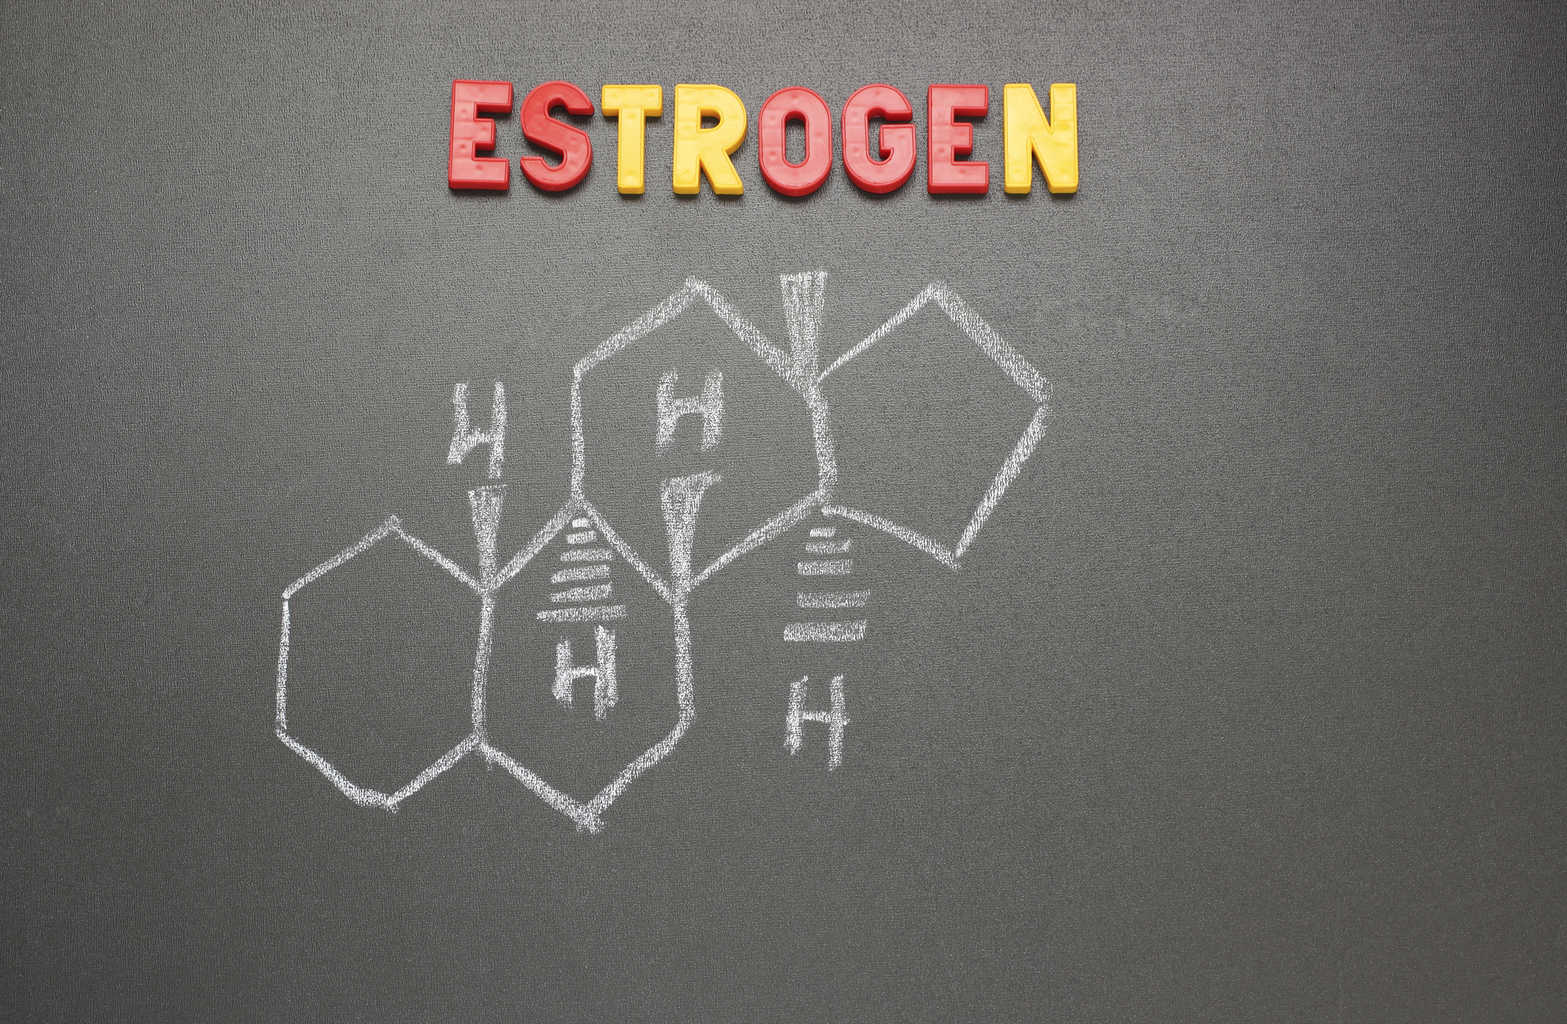 How estrogen in men causes erectile dysfunction